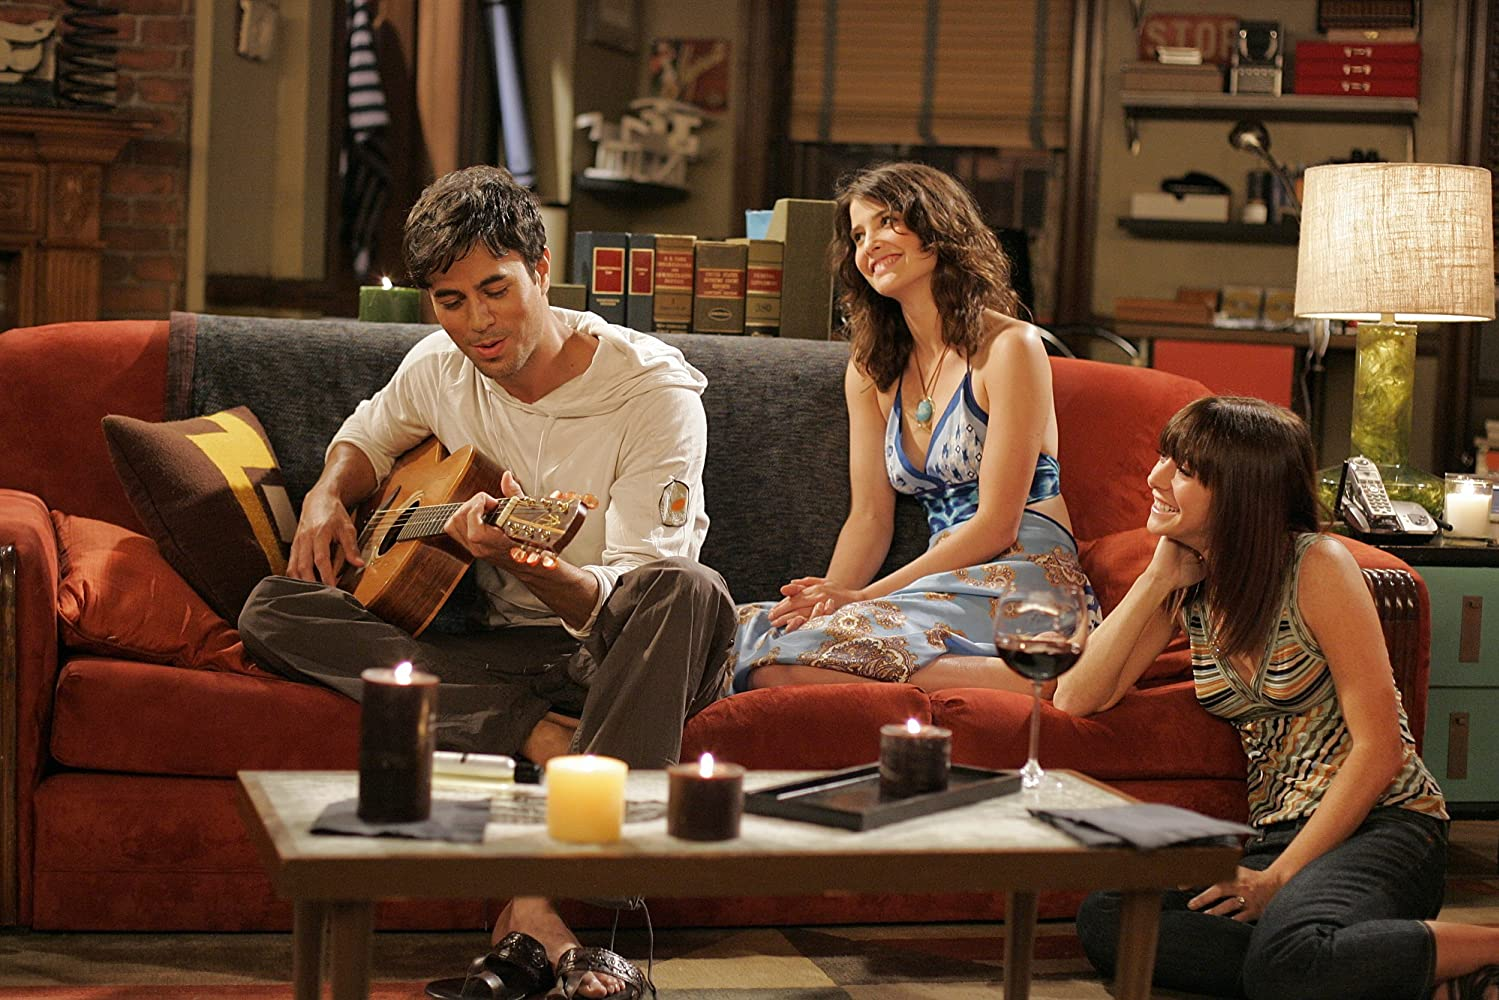 Alyson Hannigan, Enrique Iglesias, and Cobie Smulders in How I Met Your Mother (2005)